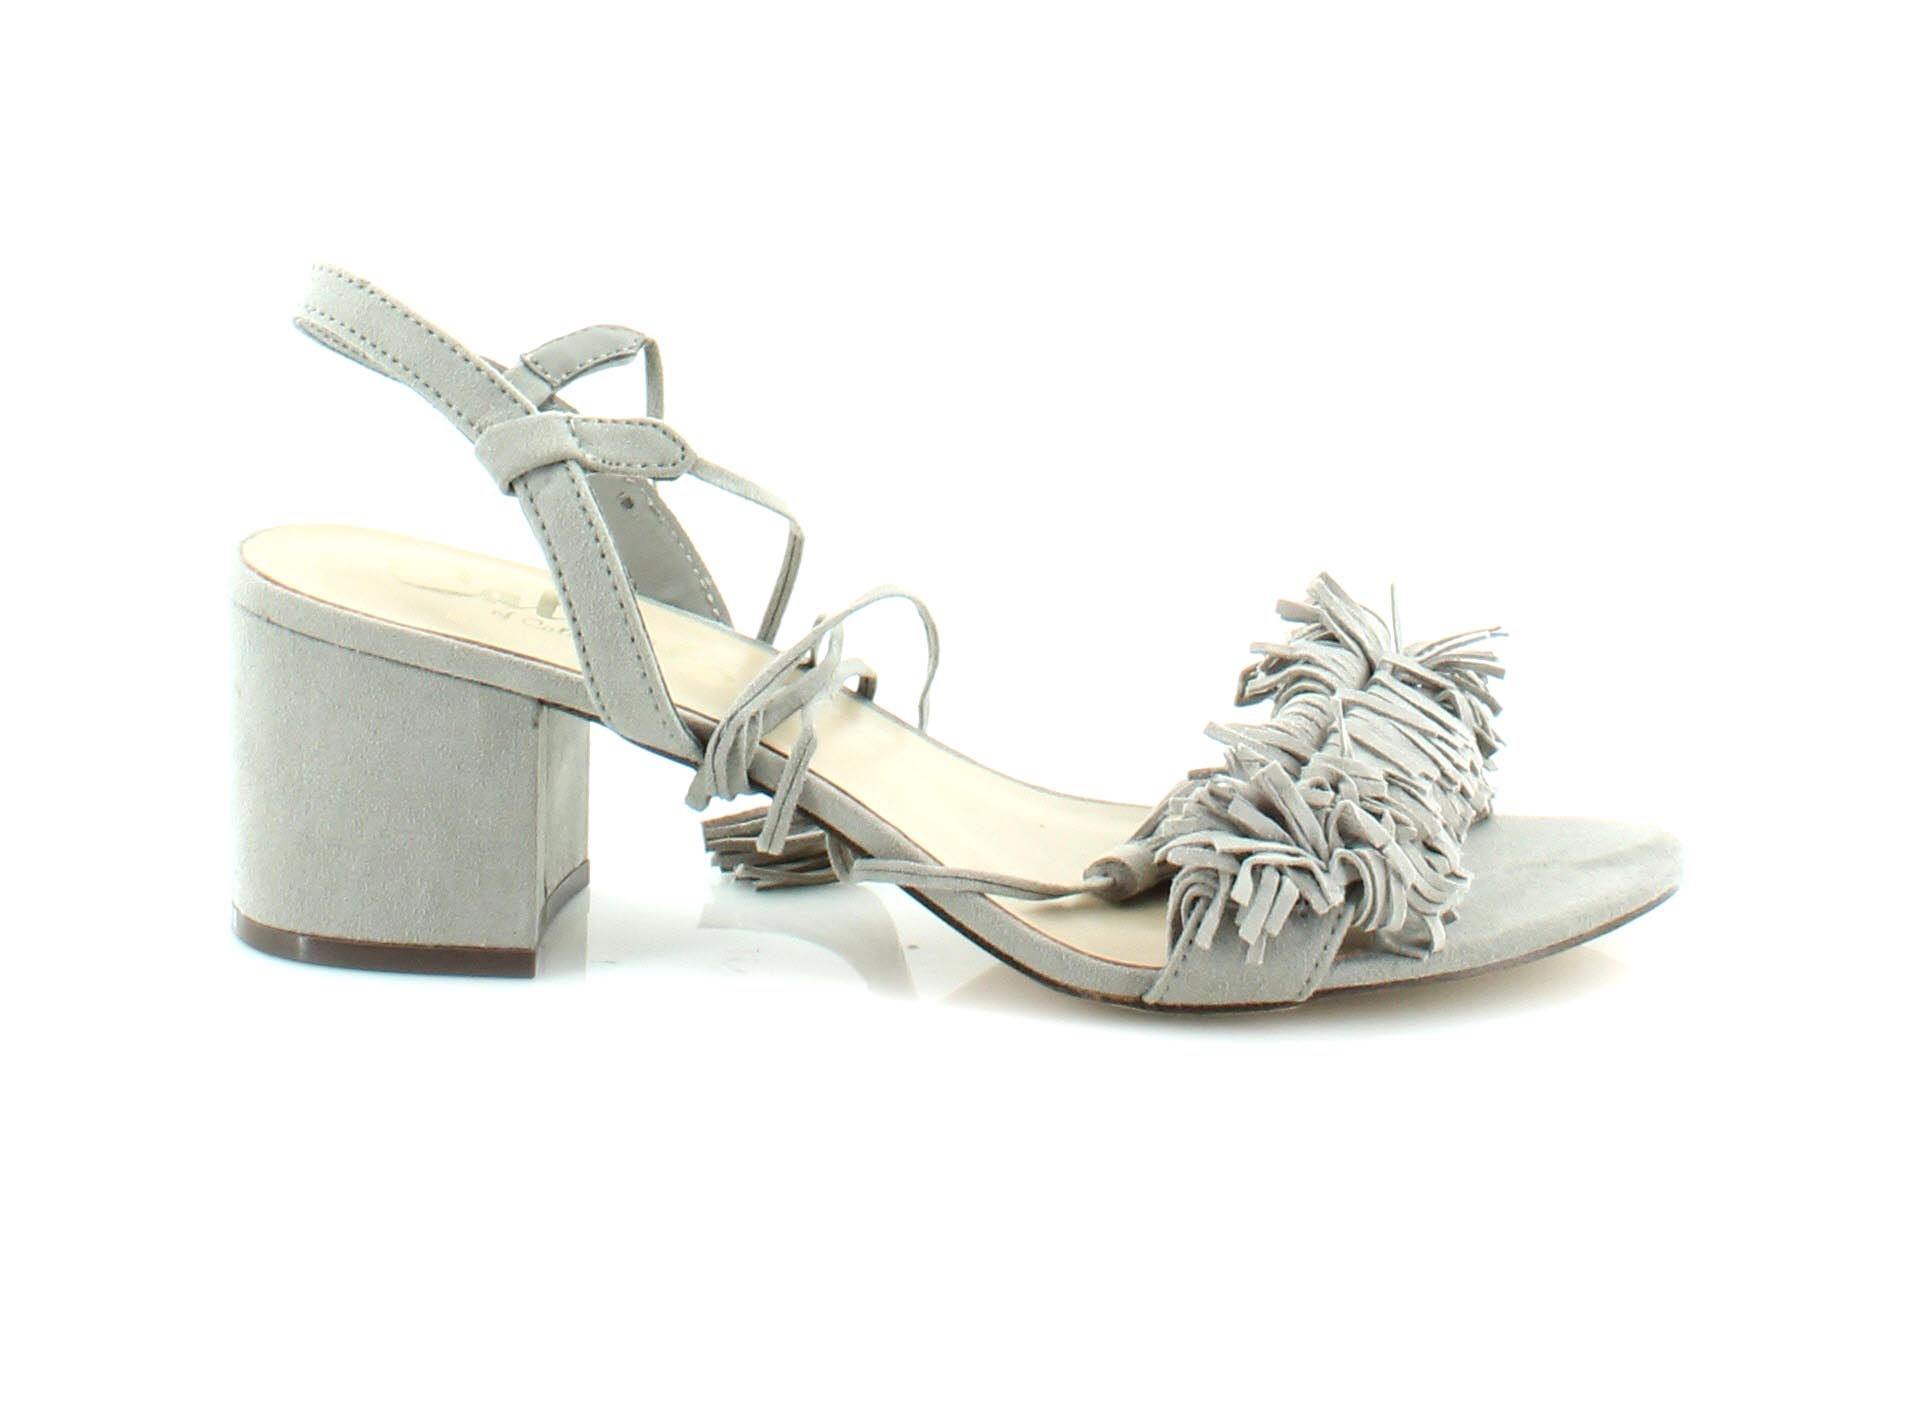 Callisto New M Melz Gray Womens Shoes Size 10 M New Sandals MSRP $100 9cef11